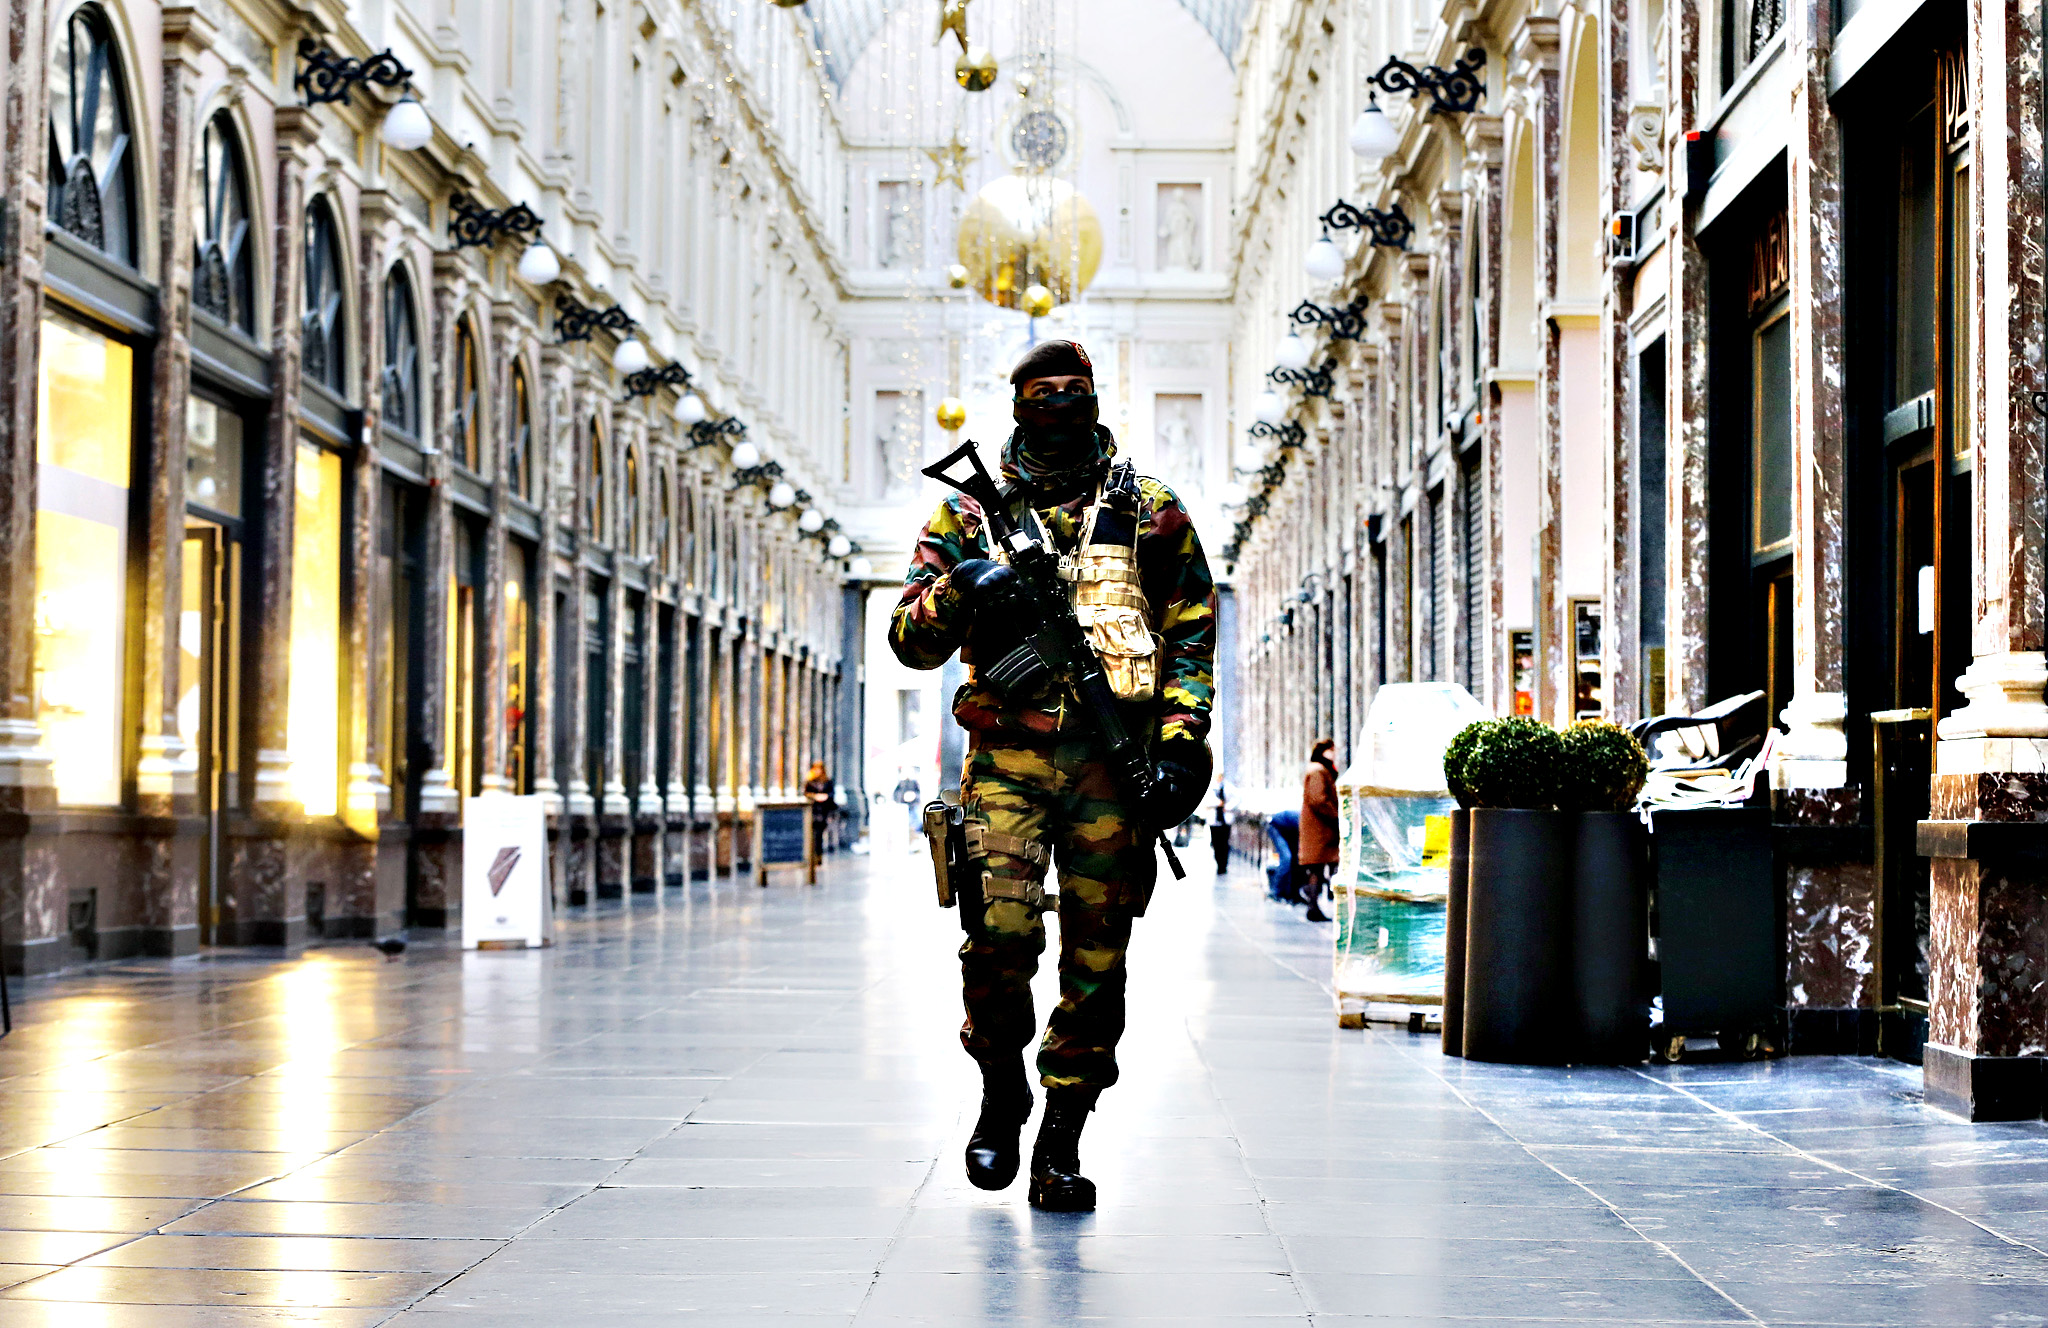 A Belgium army soldier walks through the Galeries Royal Saint-Hubert, or the Royal Saint-Hubert Galleries in Brussels, Belgium, Thursday, Nov. 26, 2015. Brussels is keeping its terror alert on highest level.